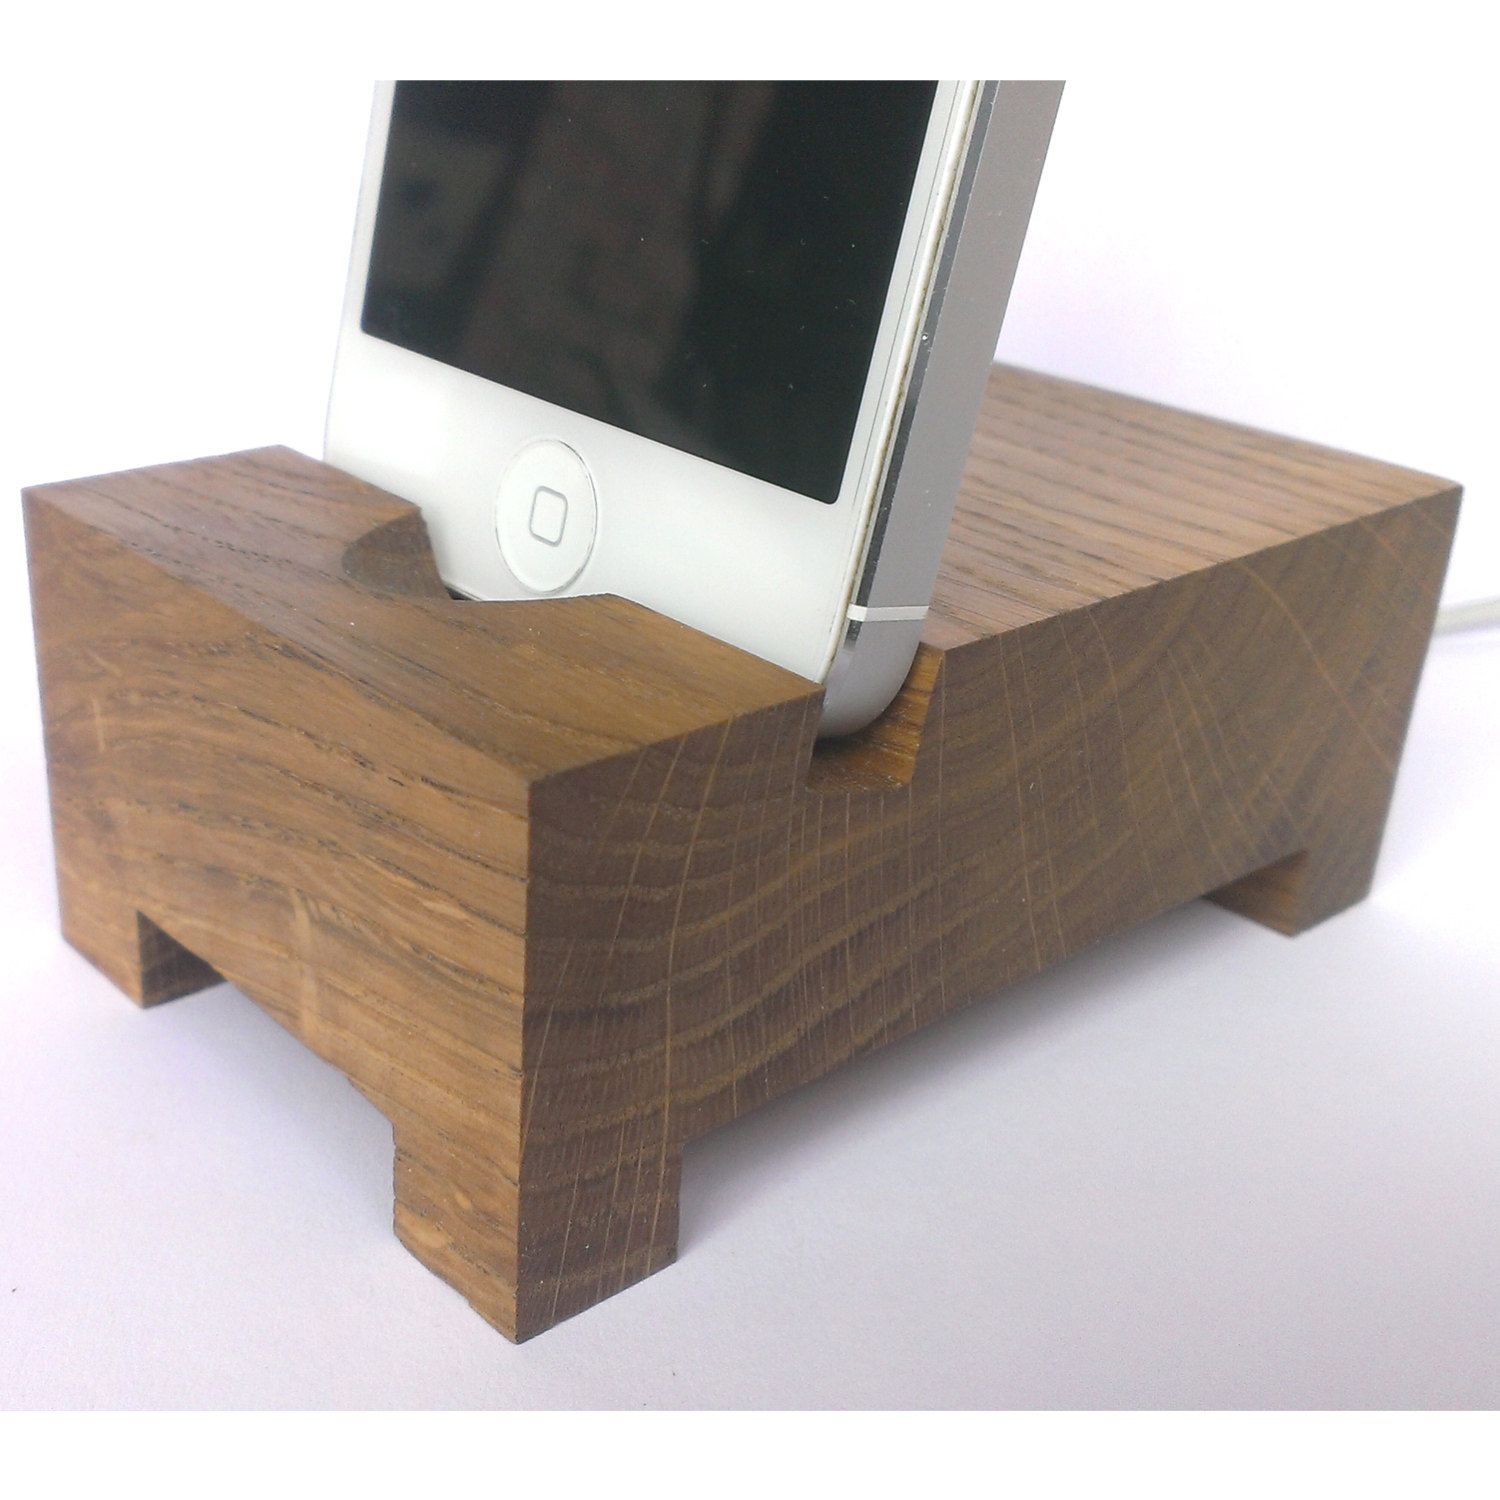 with desk lumicall confidence elite also furniture on for shop modern deals stand pin great iphone find